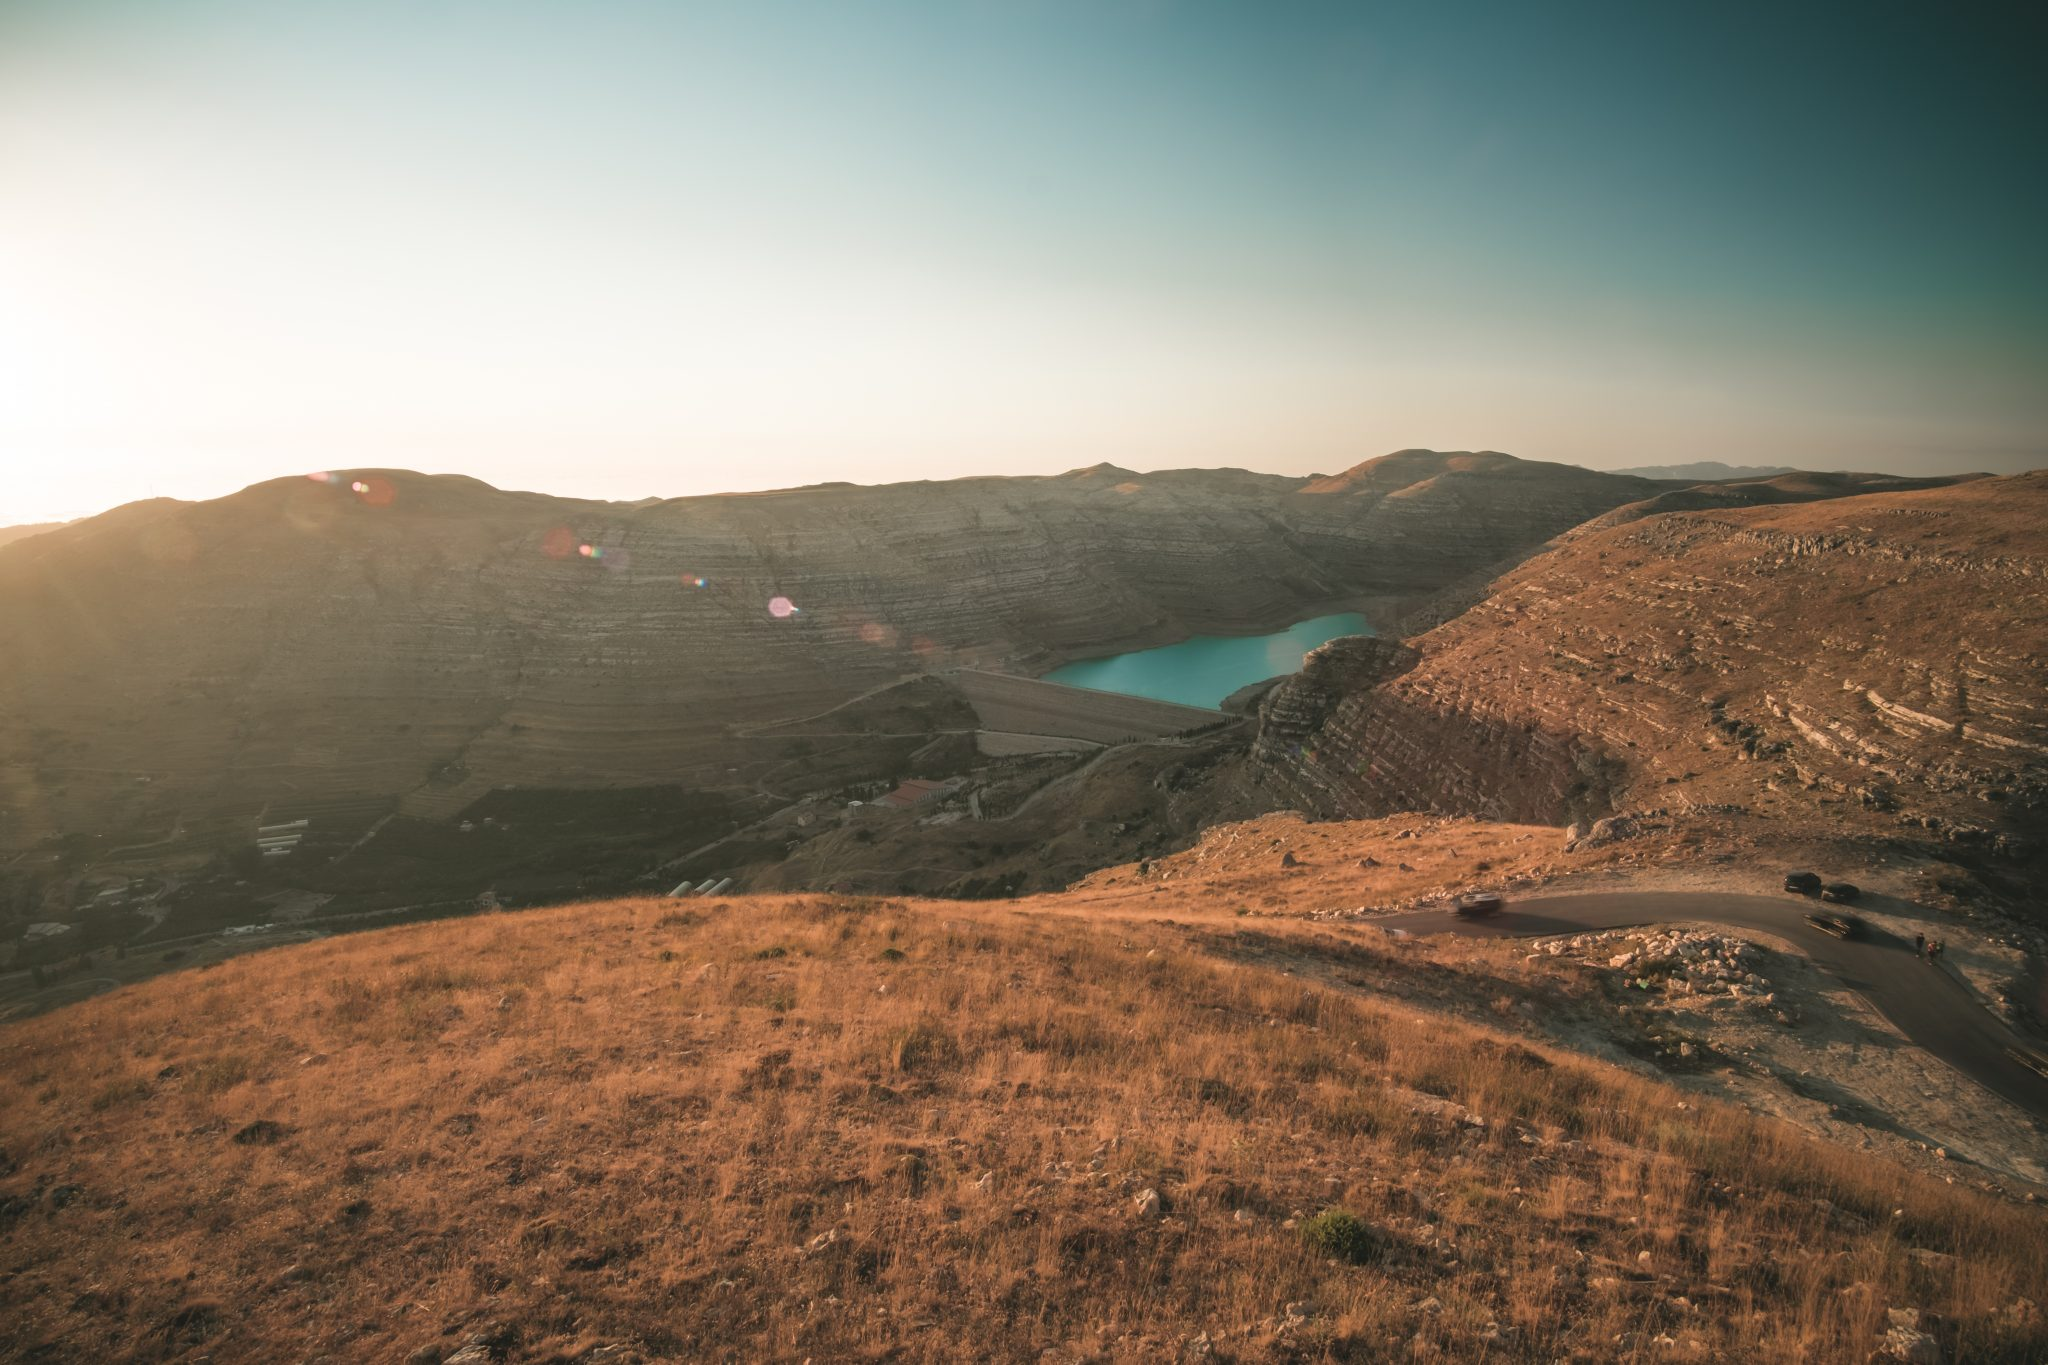 Panoramic view of the Chabrouh Dam in the lebanese mountain at sunset photo by Jo Kassis